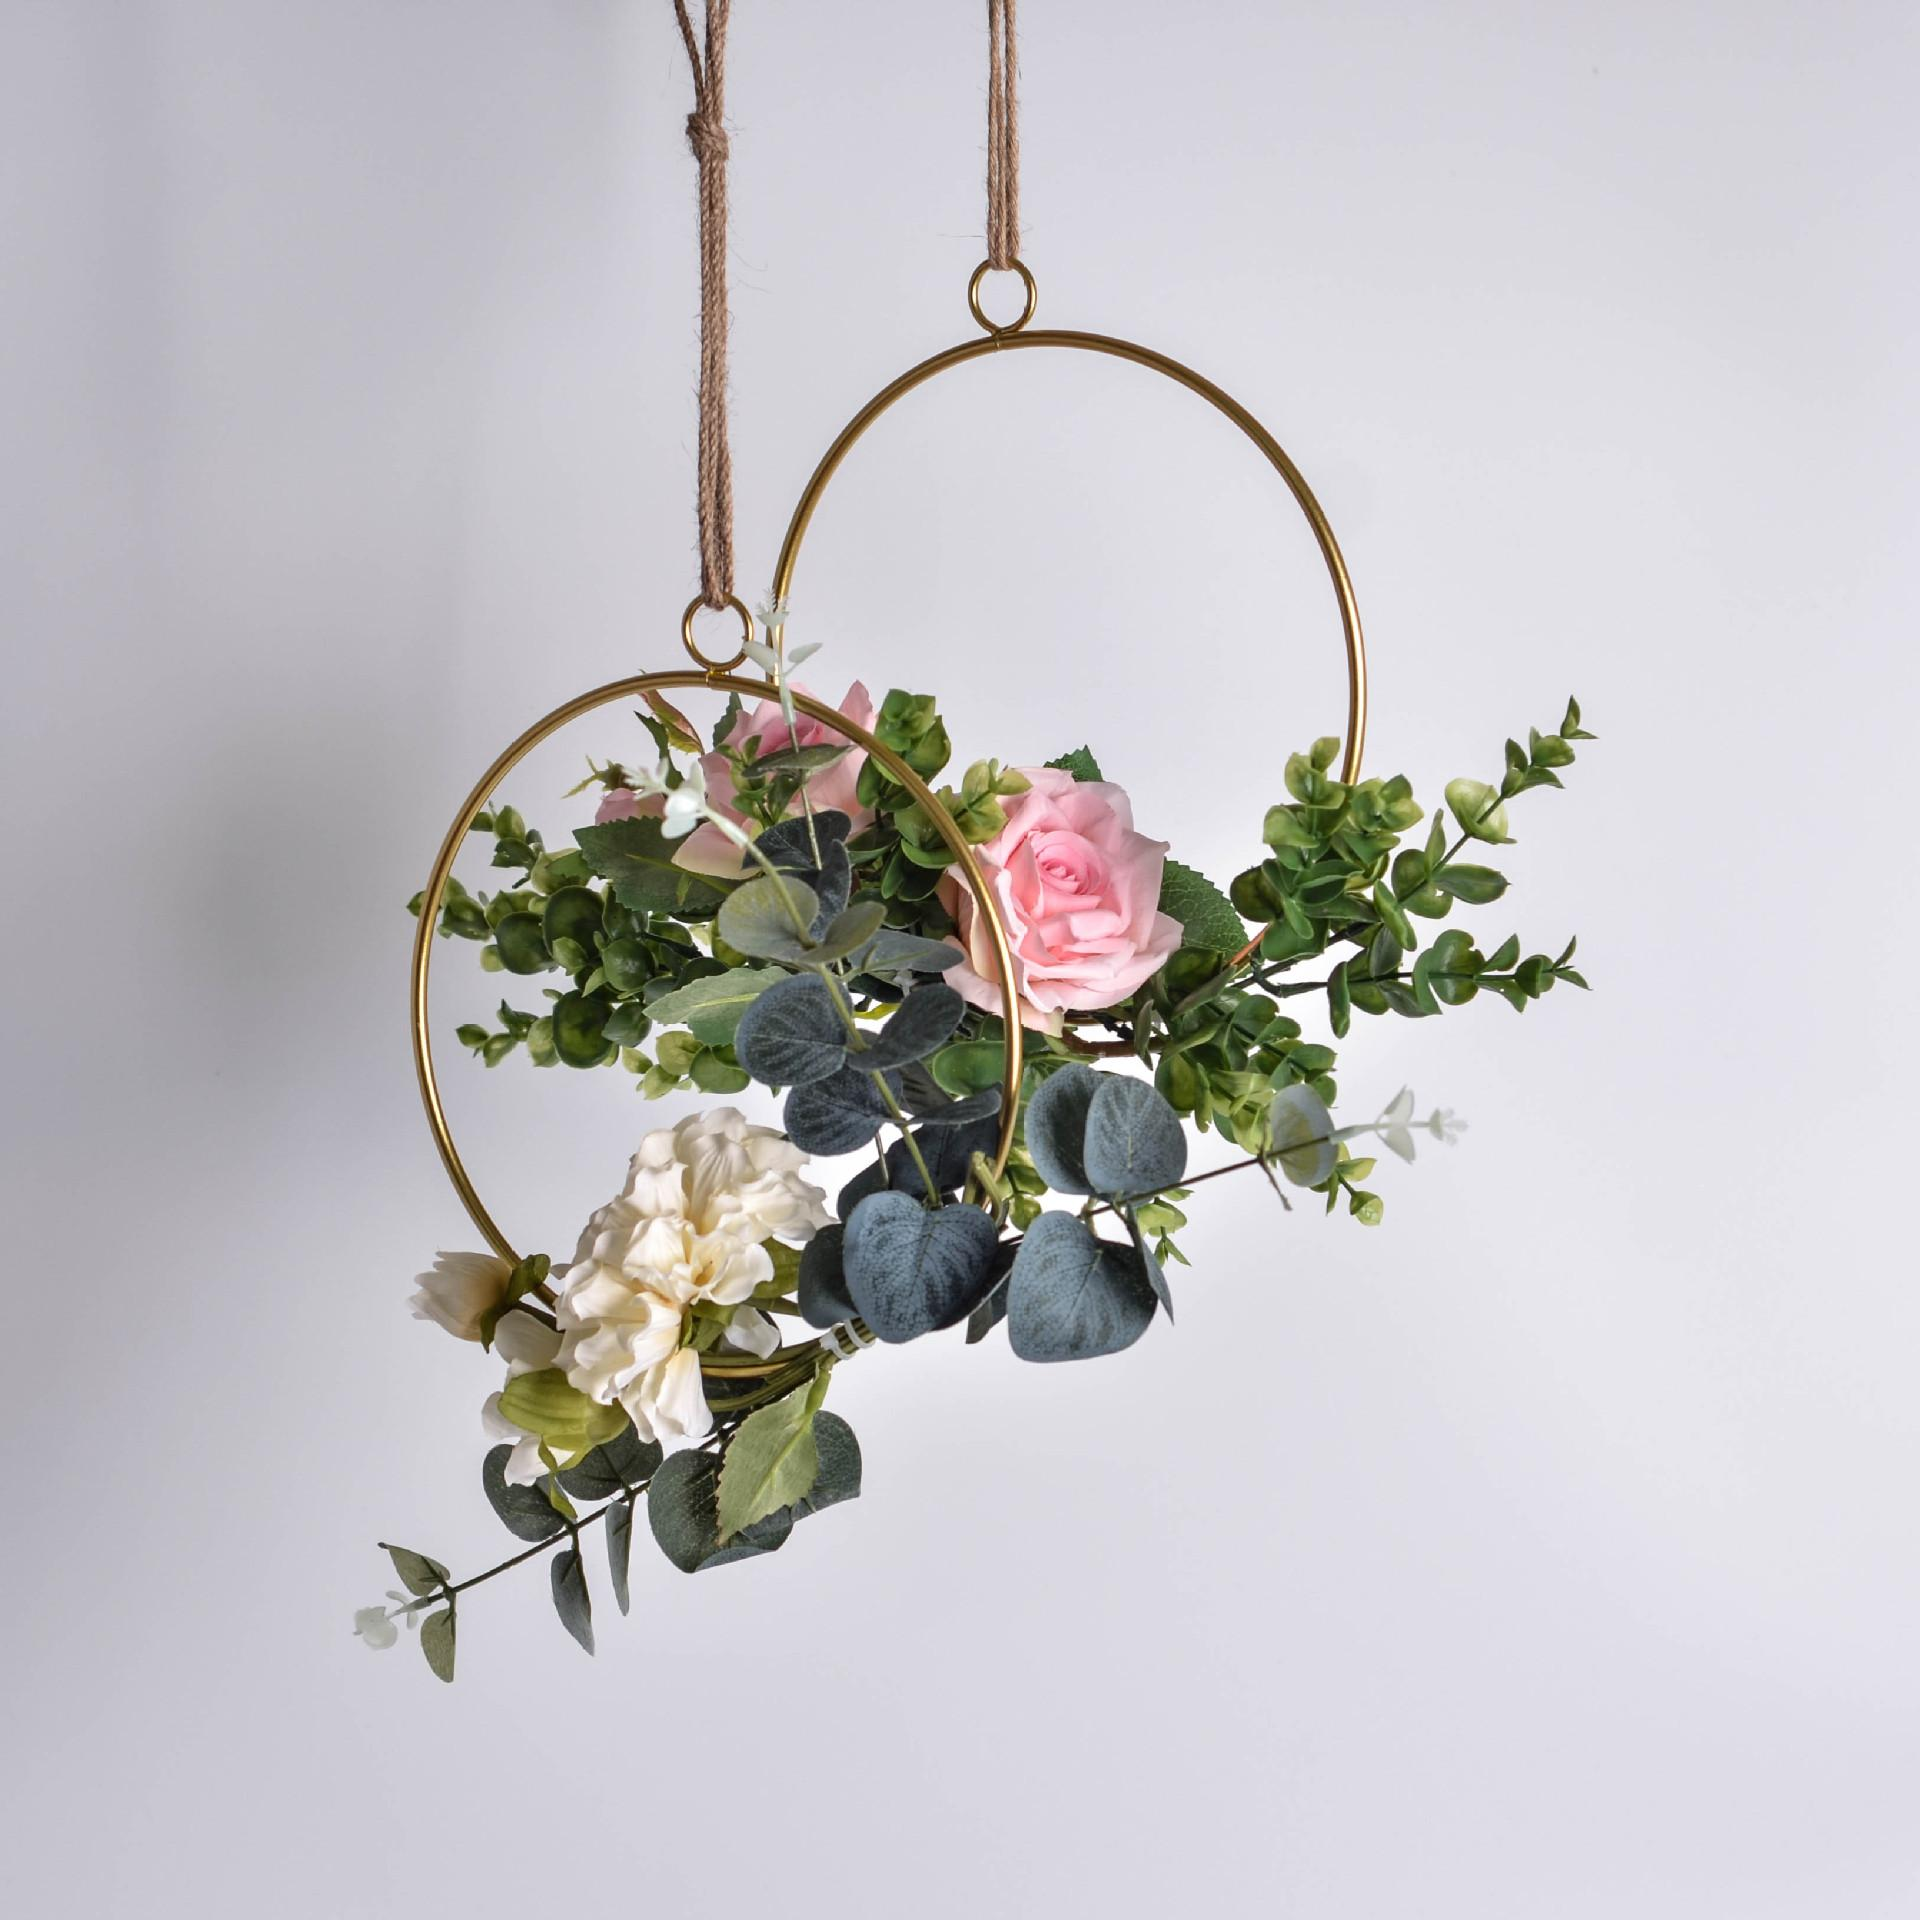 2 Pcs/lot Wedding decoration Wrought iron geometric wreath hanging ornament Artificial Rose flowers Wreath For home decoration accessories